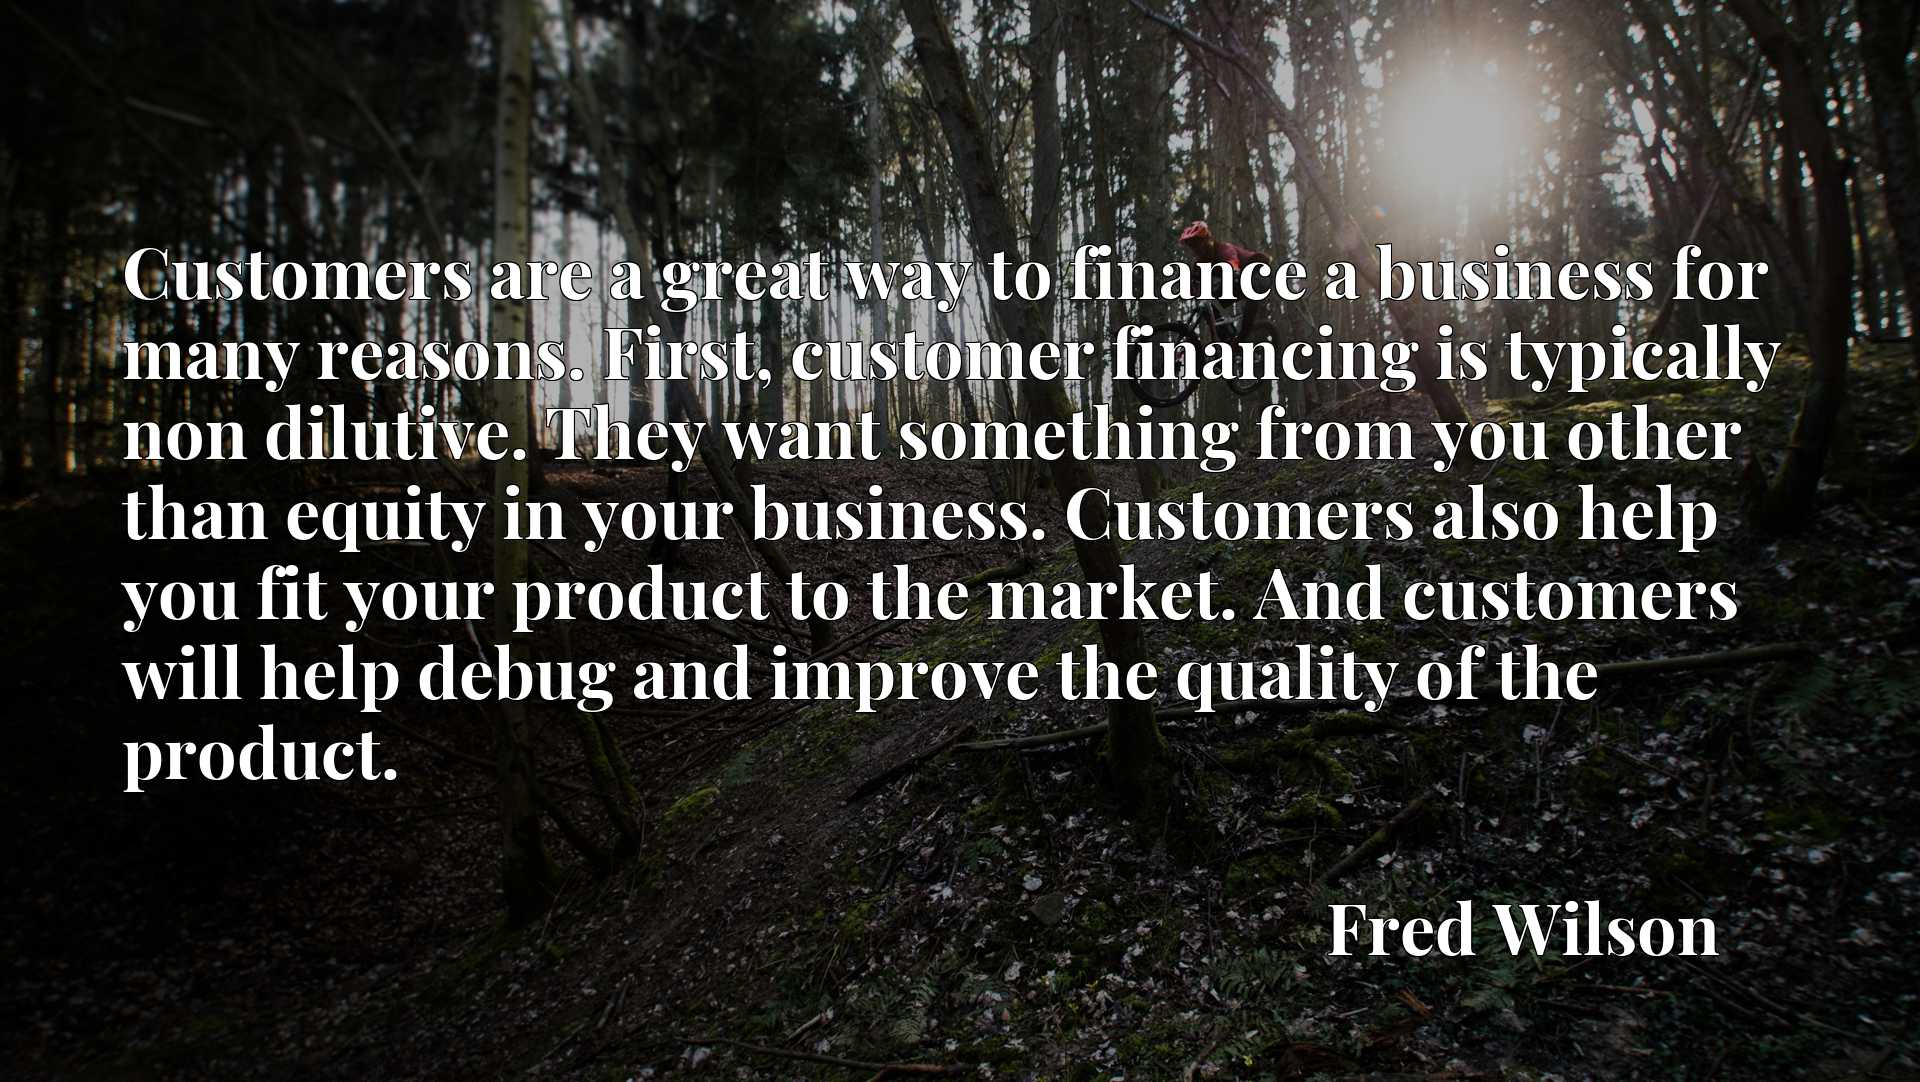 Customers are a great way to finance a business for many reasons. First, customer financing is typically non dilutive. They want something from you other than equity in your business. Customers also help you fit your product to the market. And customers will help debug and improve the quality of the product.